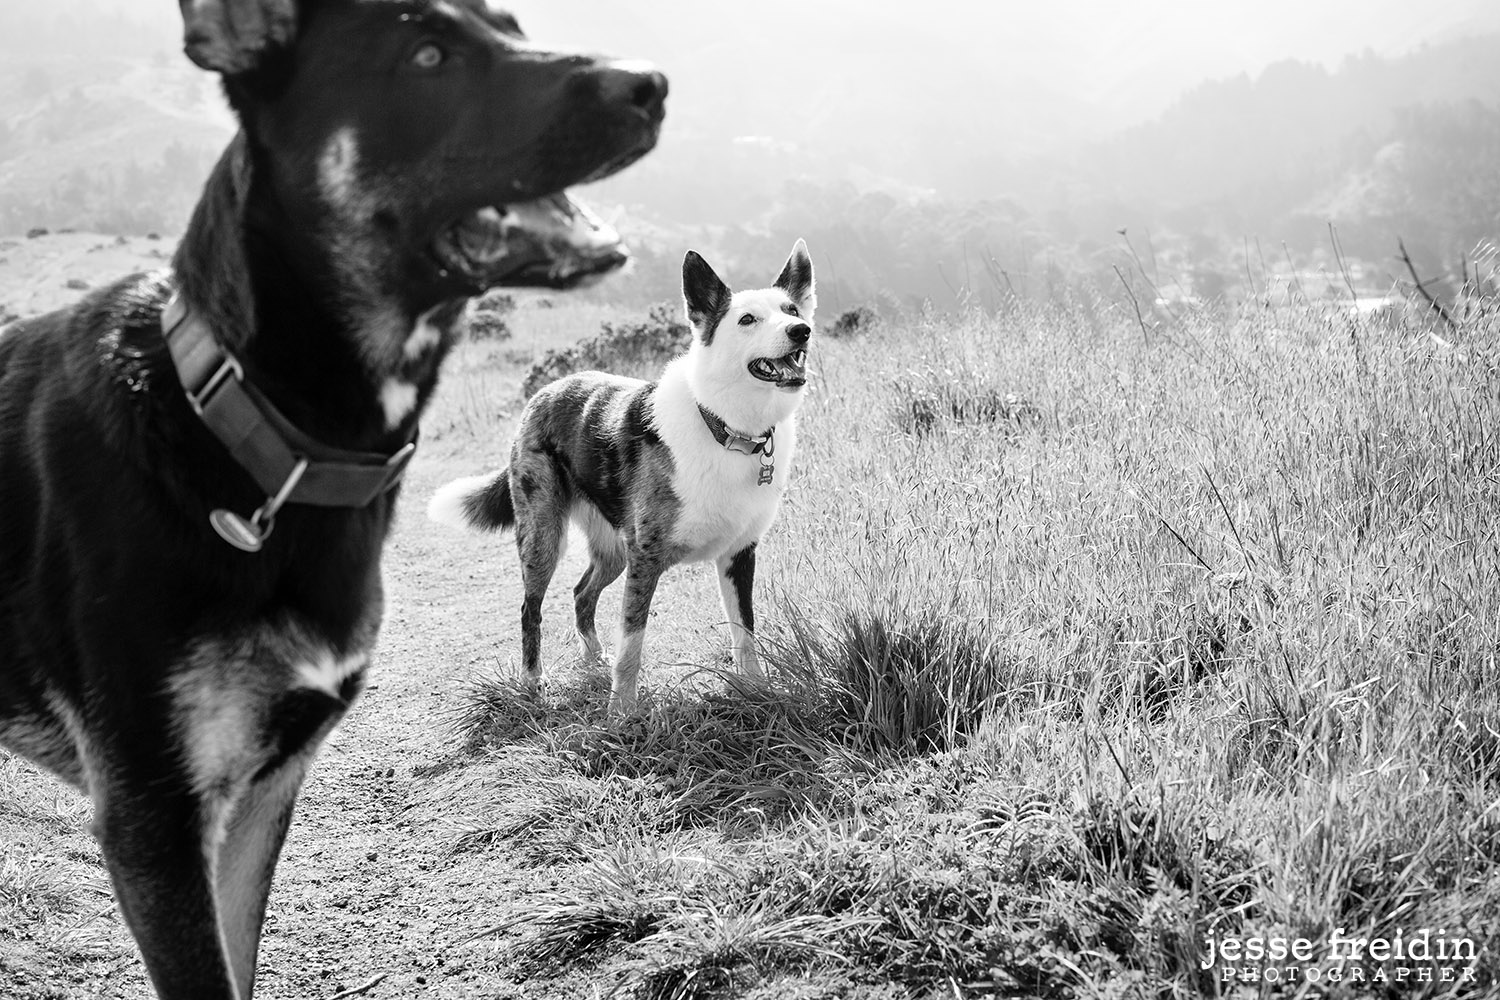 San Francisco Dog Photographer Jesse Freidin